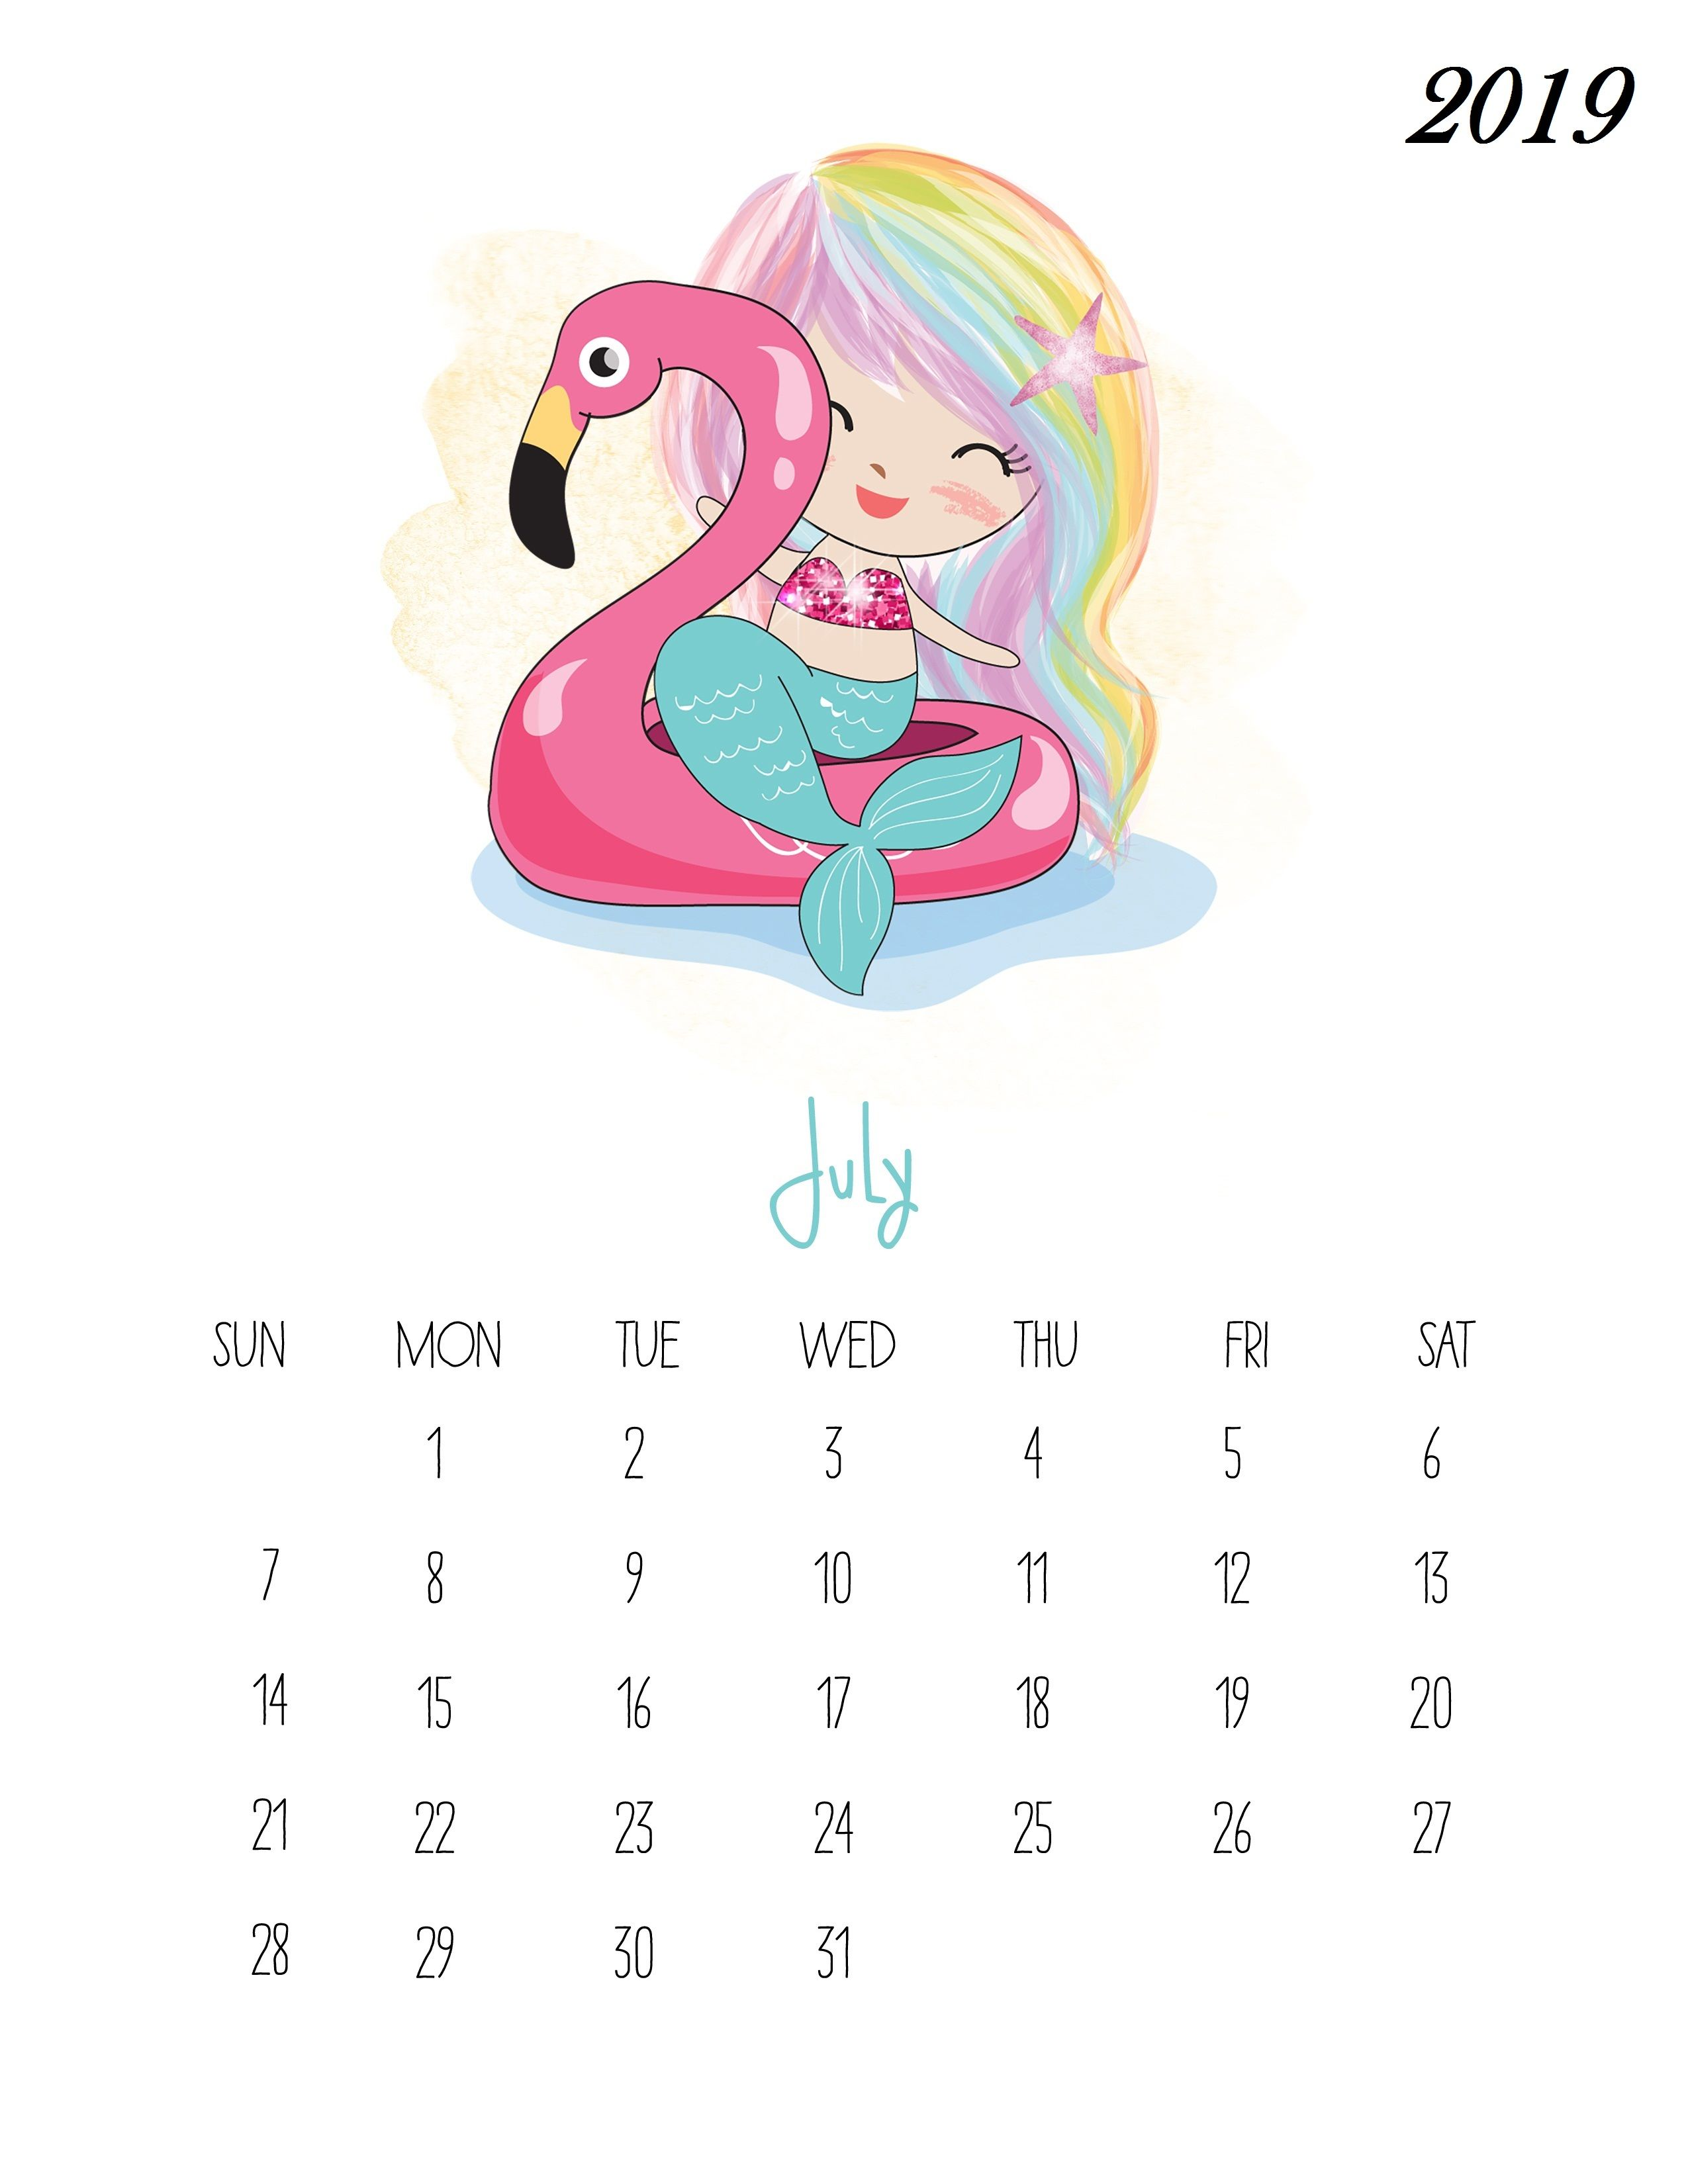 Kids Pocahontas Printable Calendar 2020 For February Free Printable July 2019 Kids Calendar | Calendar | Kids calendar